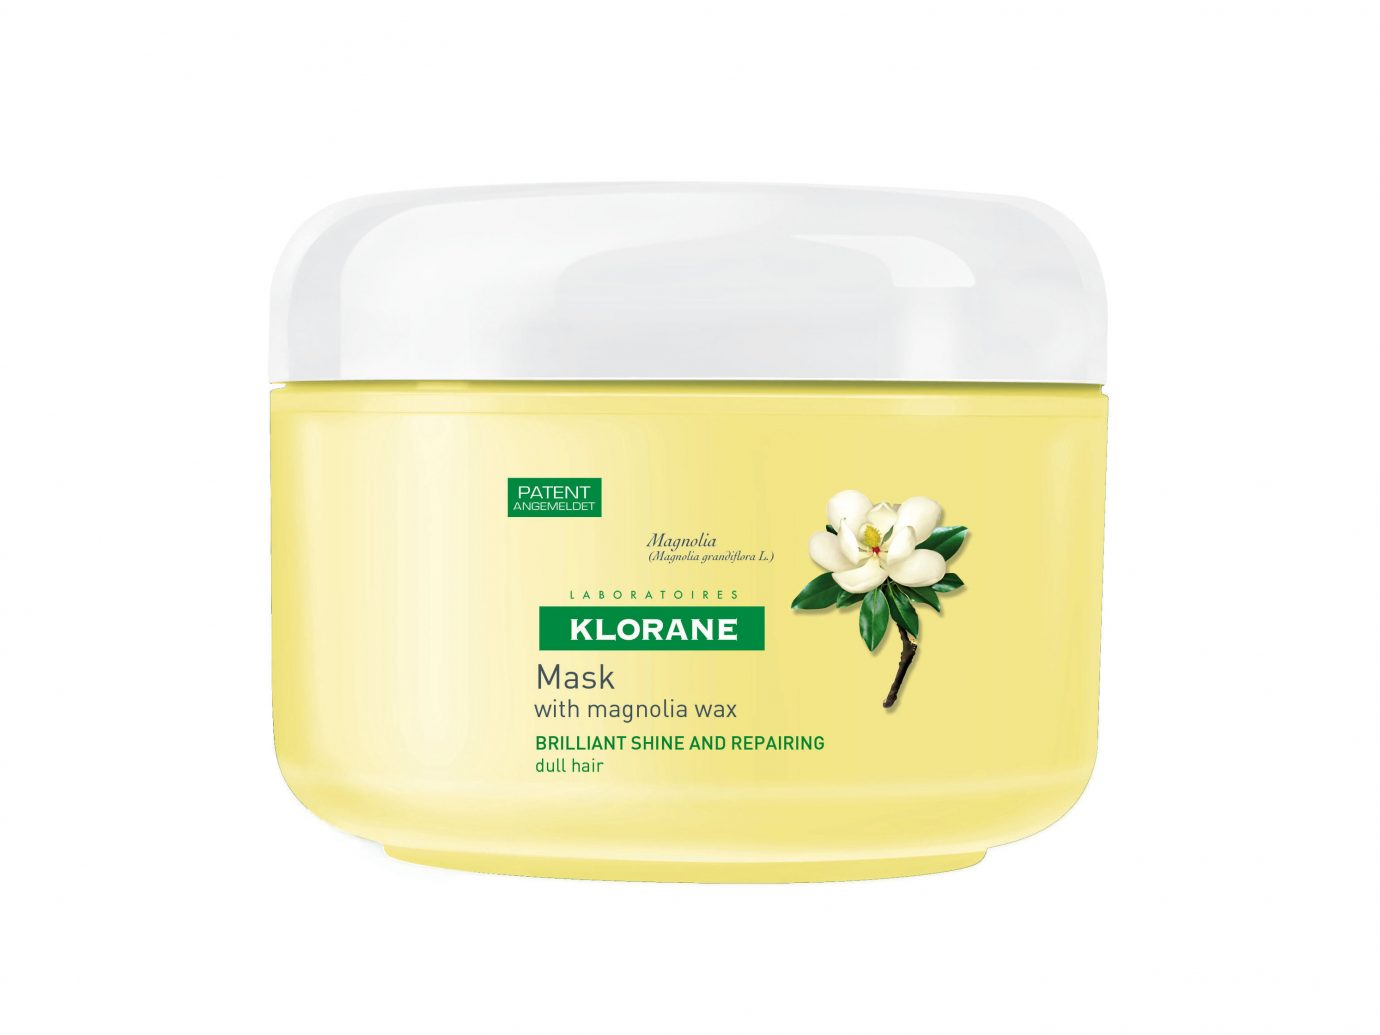 Beauty toiletry skin cream product cream skin care material